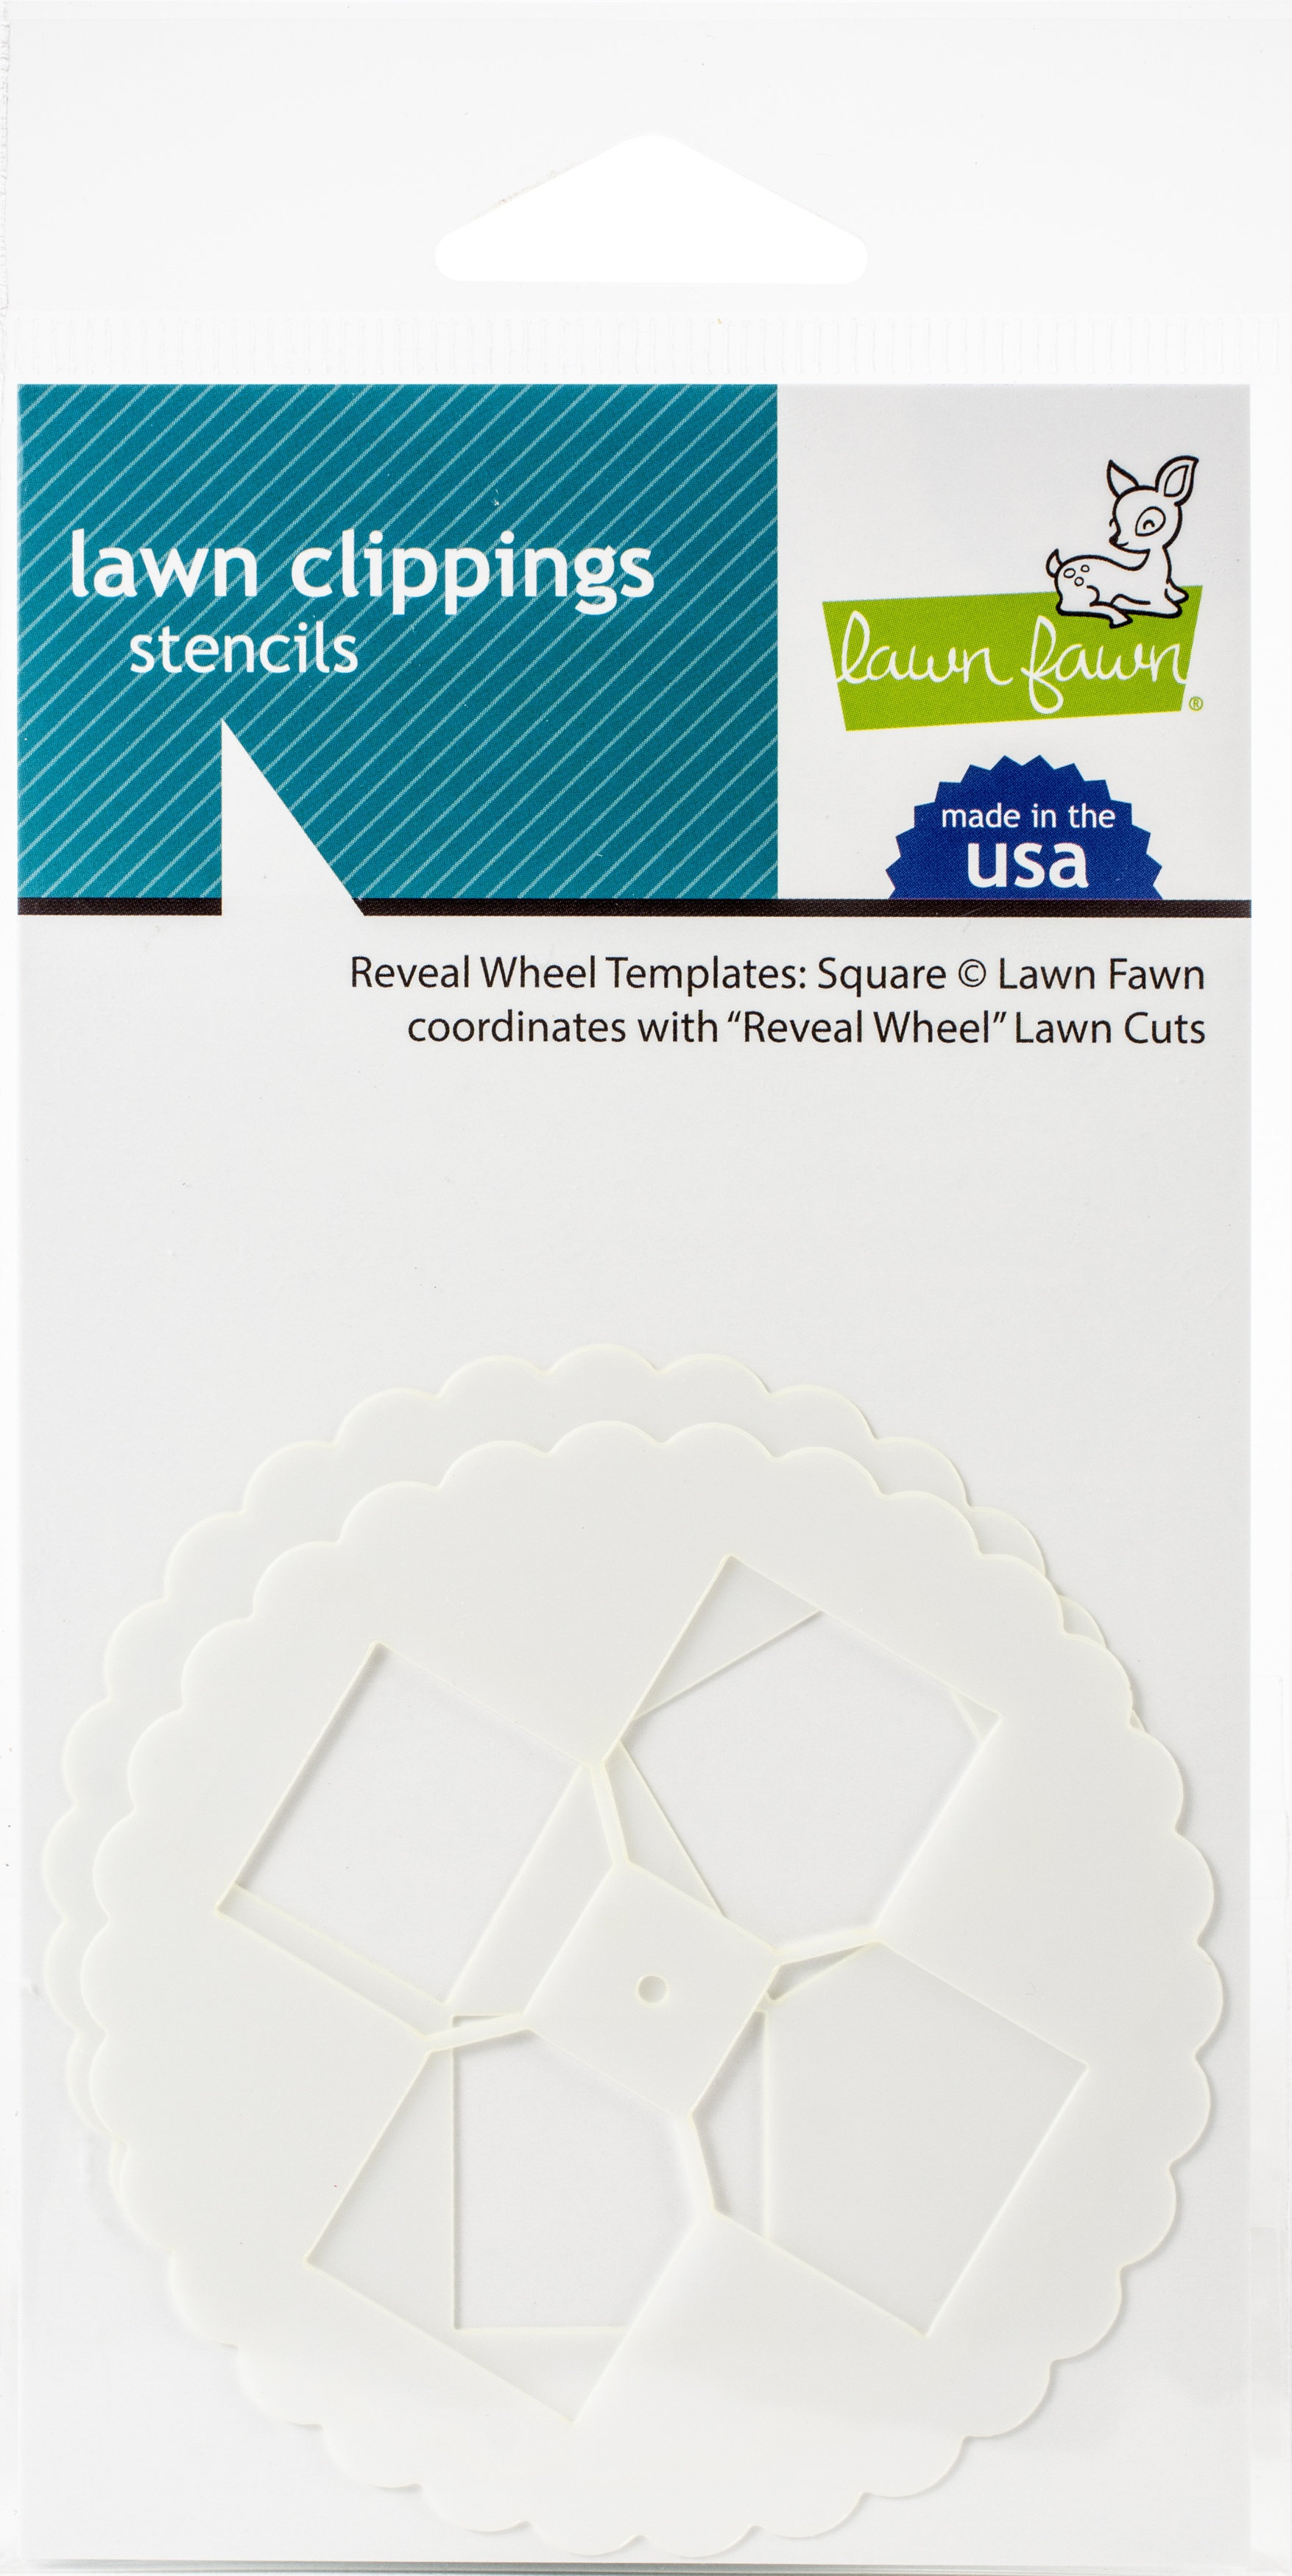 Lawn Clippings Stencils-Reveal Wheel: Square